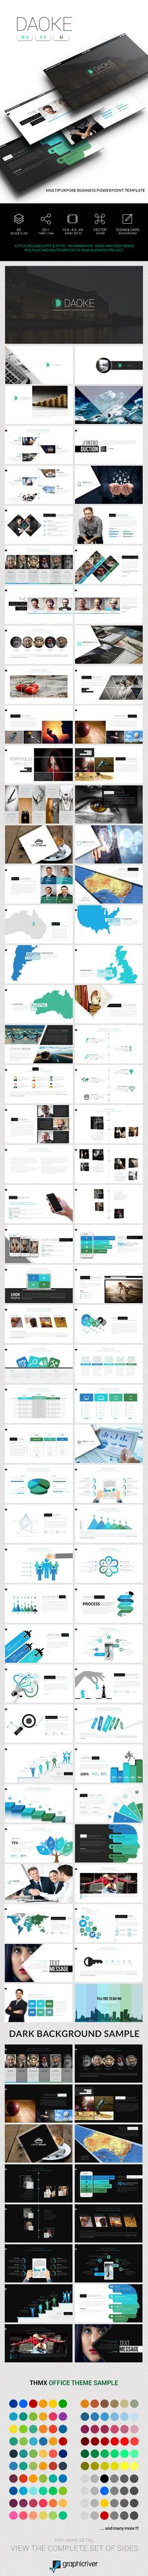 Daoke Business Powerpoint — Powerpoint PPT #winning #maps • Download ➝ https://graphicriver.net/item/daoke-business-powerpoint/19165918?ref=pxcr